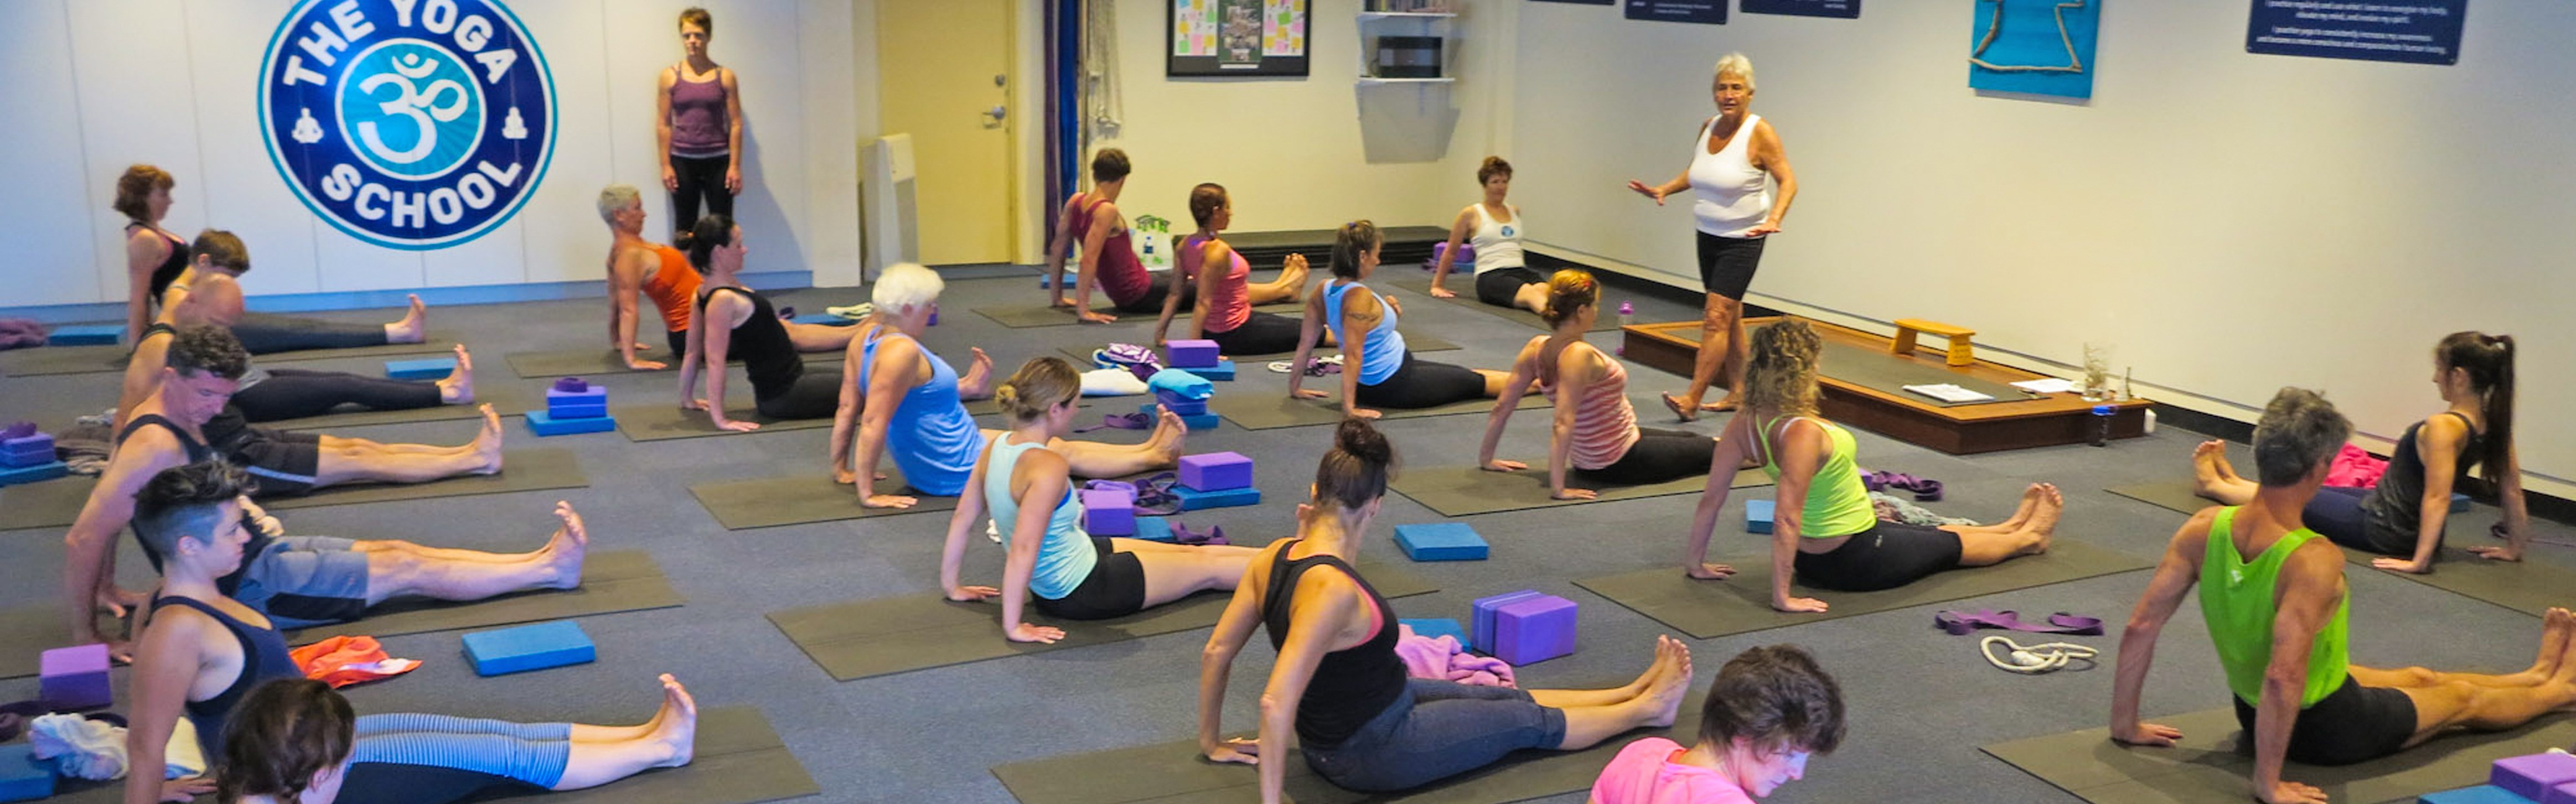 knoff-yoga level 3 teacher-training-class